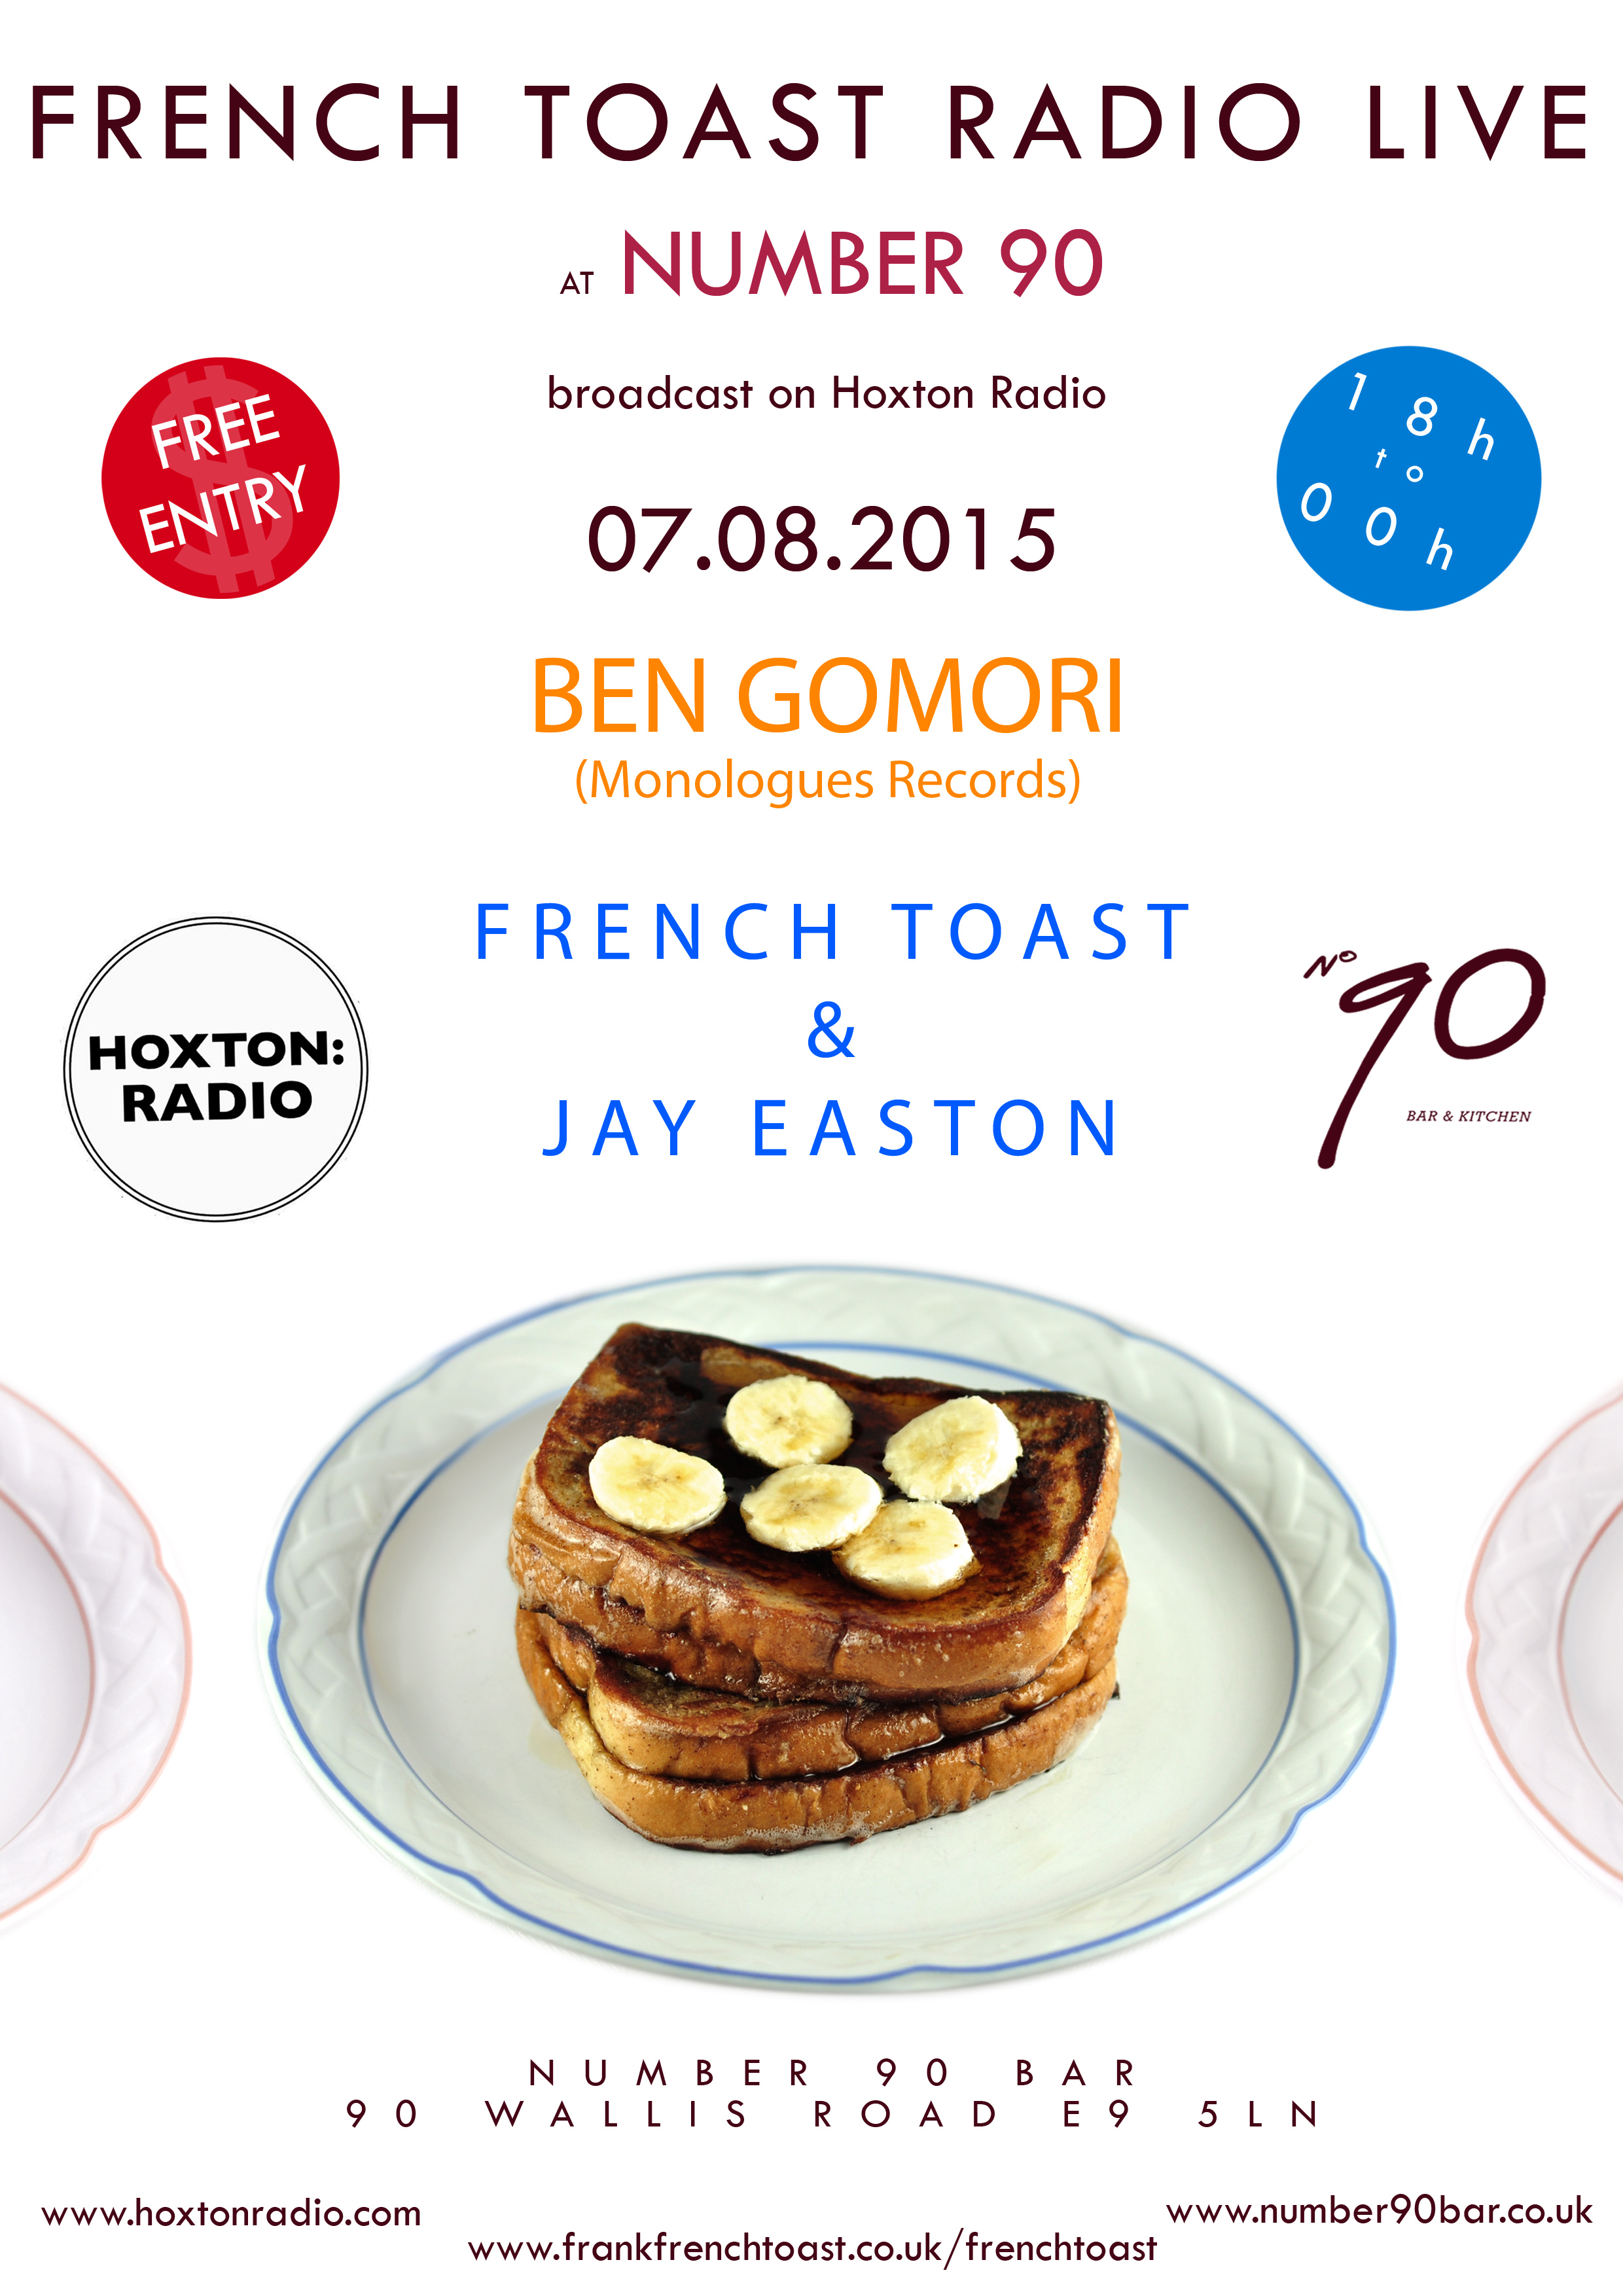 French Toast live at Number 90 Bar & Kitchen - Hoxton Radio